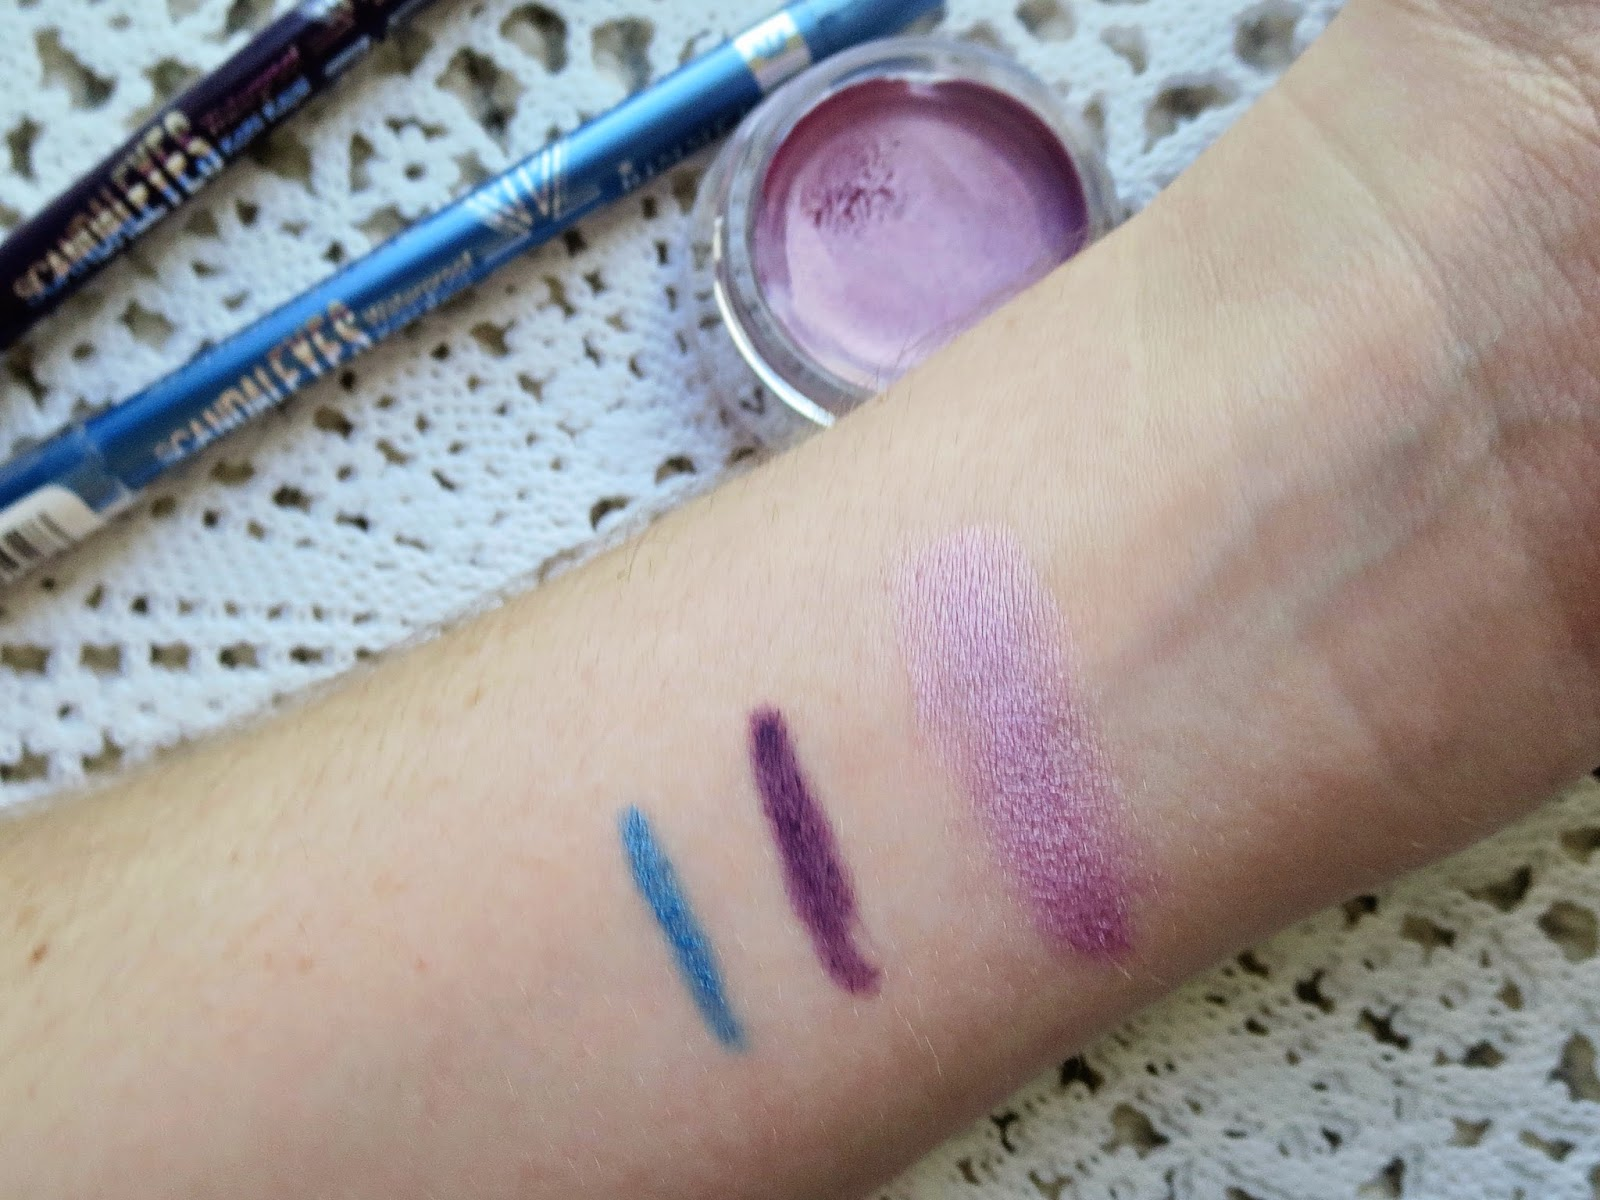 a picture Maybelline Hibiscus Heartbreaker, Rimmel Scandaleyes Kohl in Purple & Turquoise (swatch)